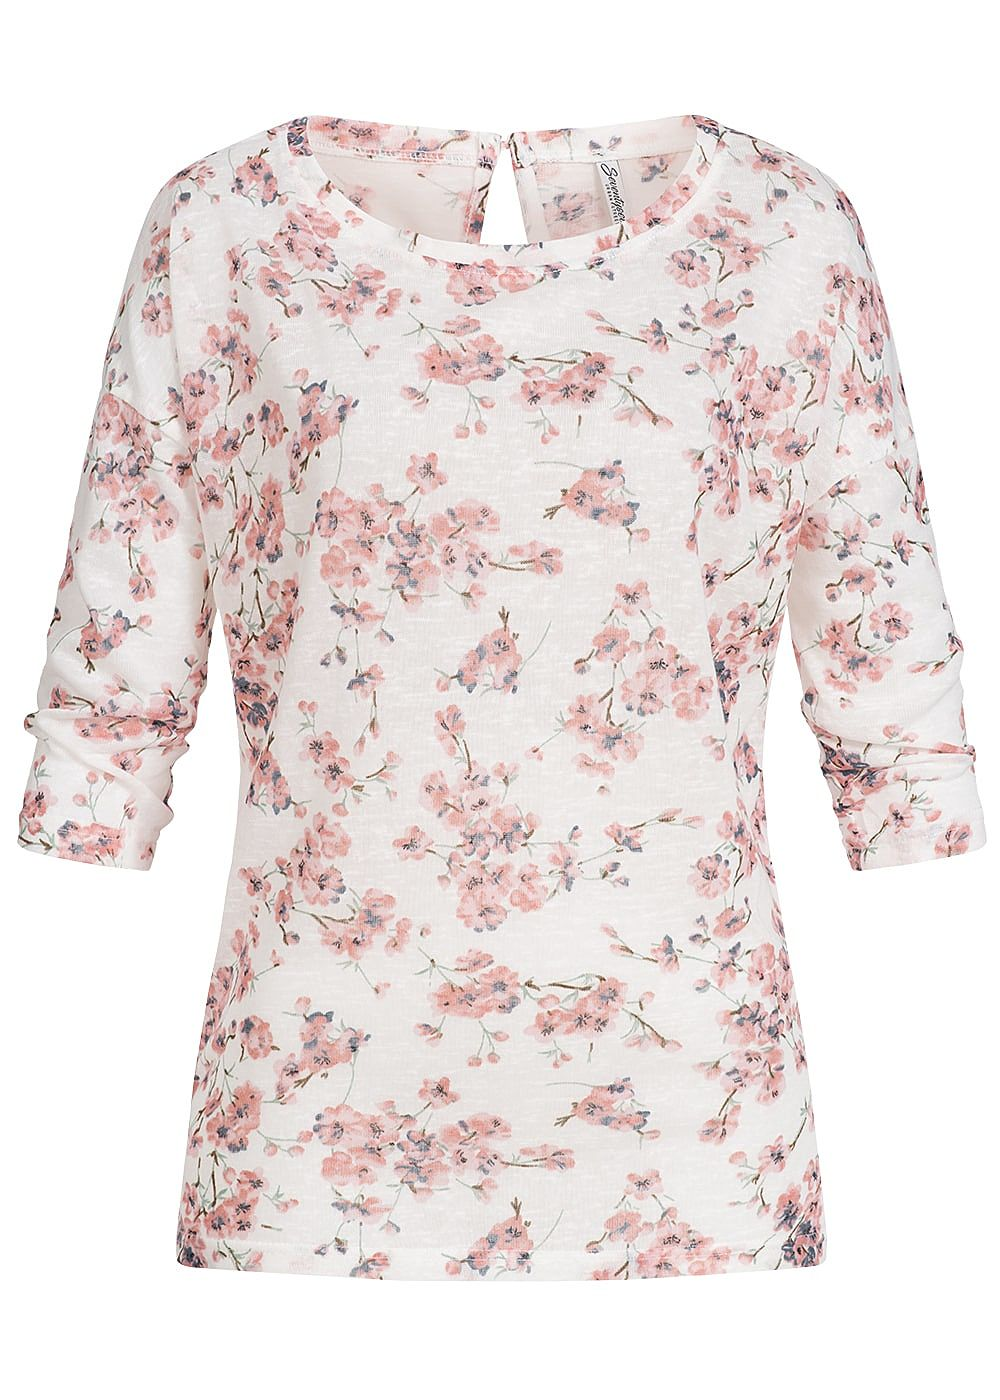 Seventyseven Lifestyle Damen 3/4 Arm Shirt Blumen Print off weiss rosa - Art.-Nr.: 19019020